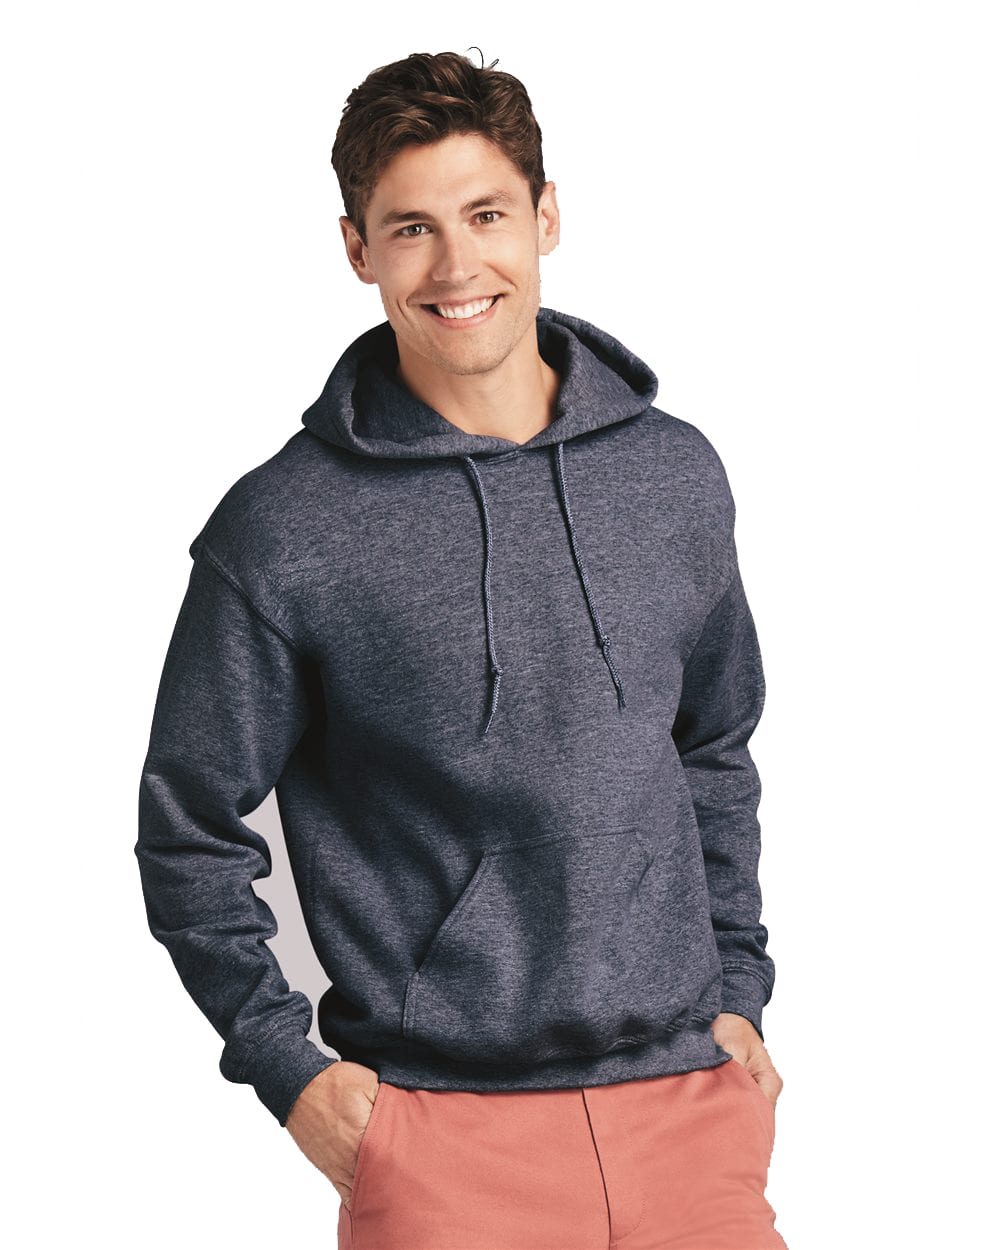 The Best 5 Blank Hoodies For Printing - Quality Blank